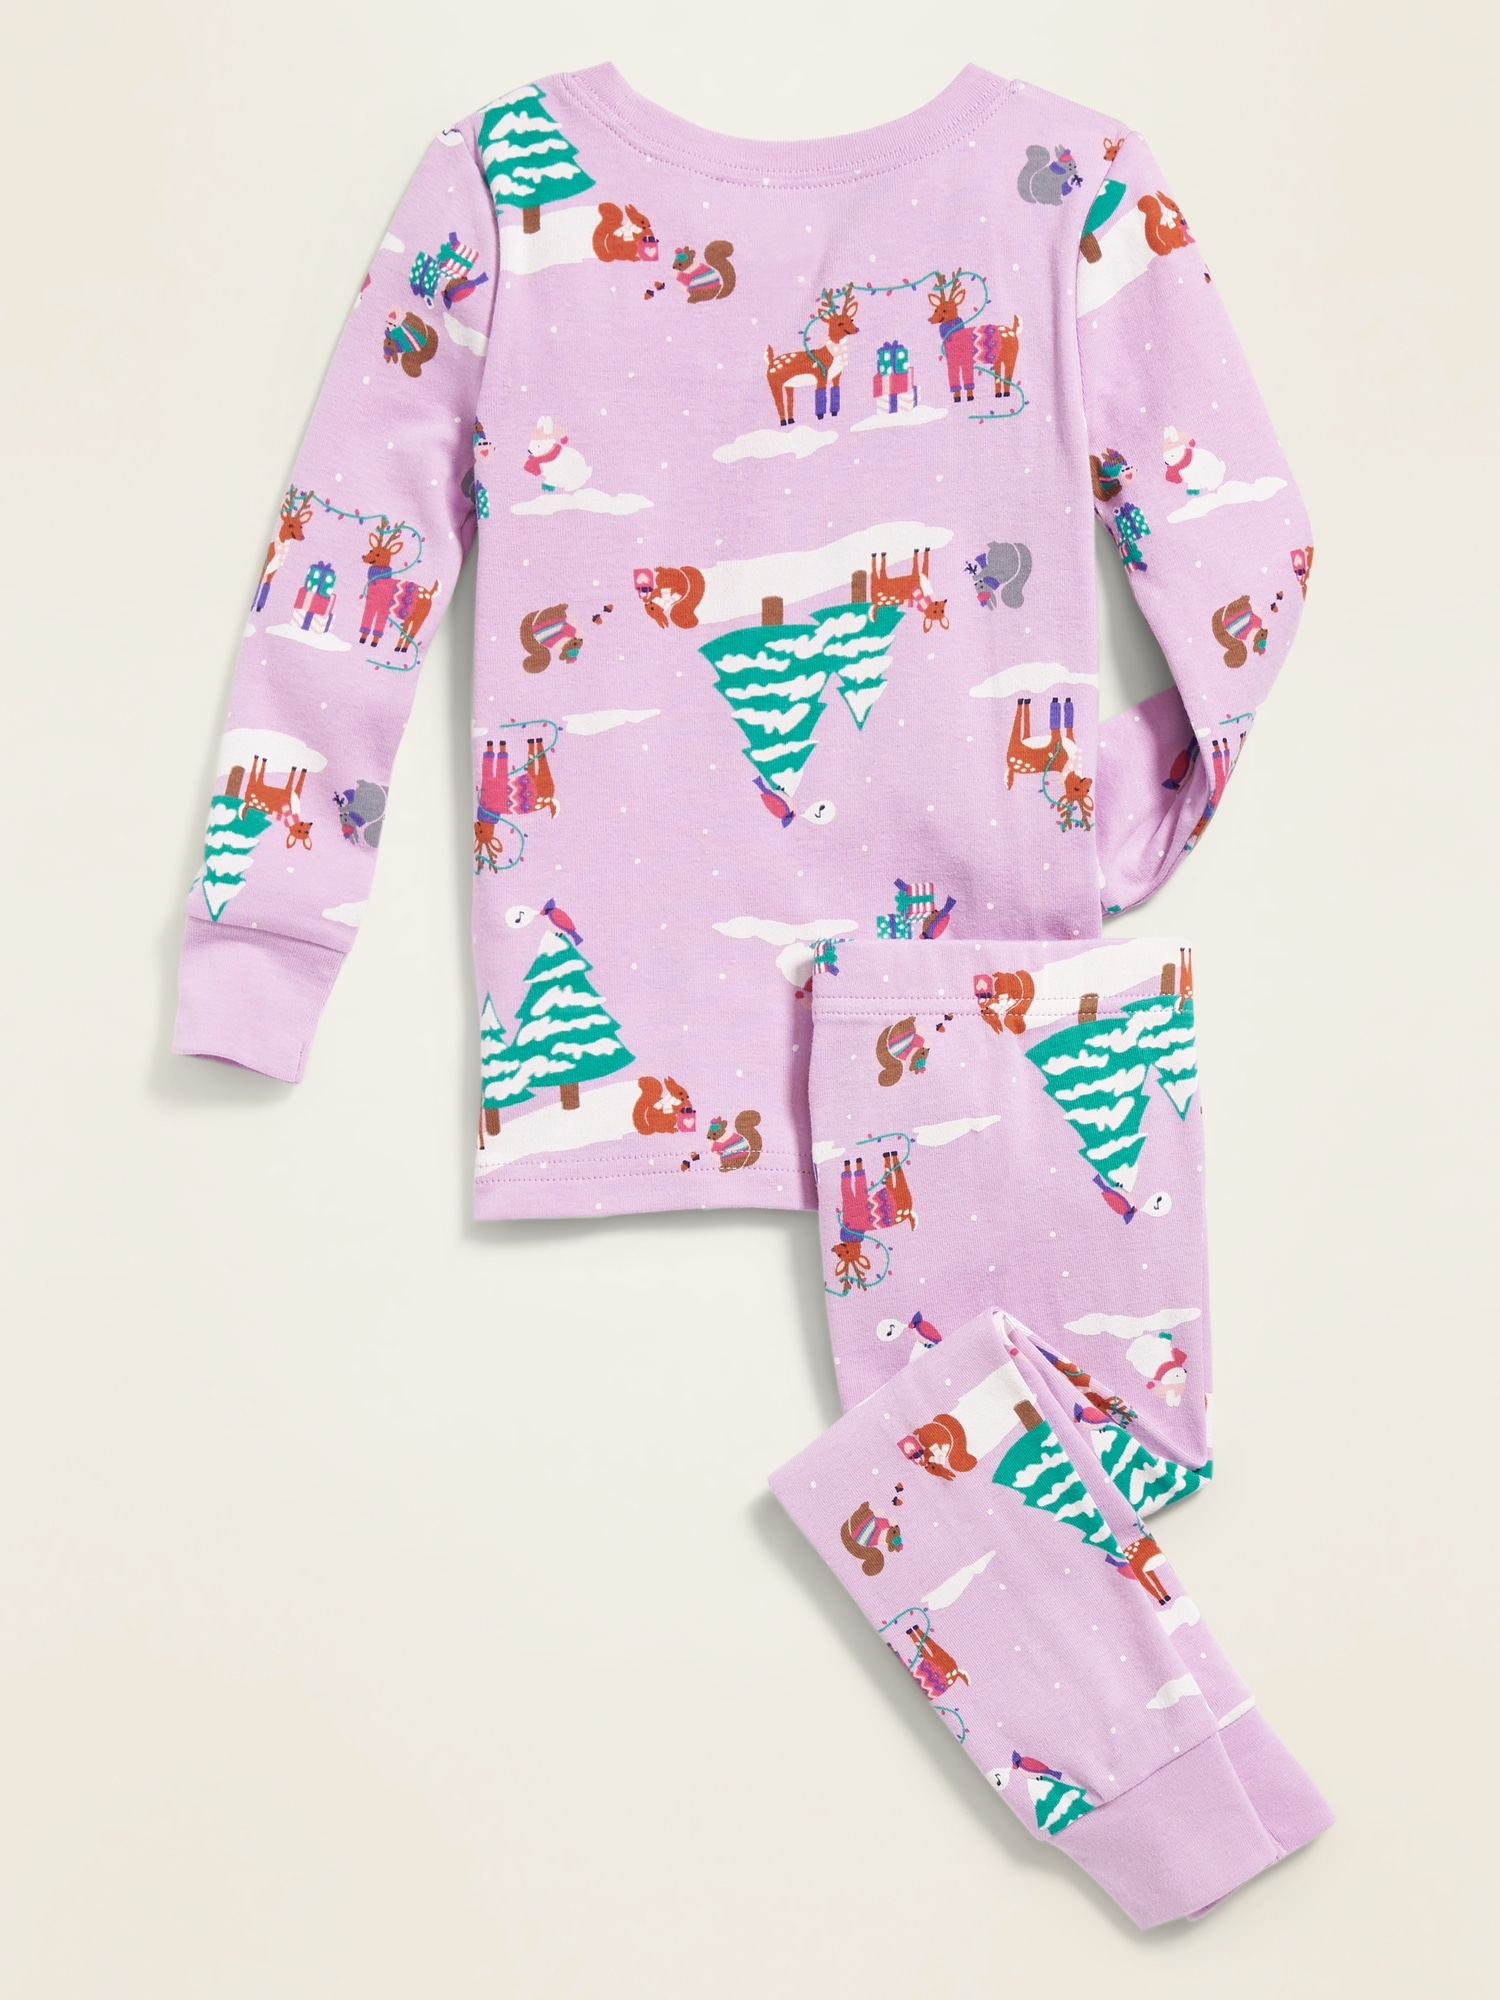 Jingle Jammies for Toddlers and Baby